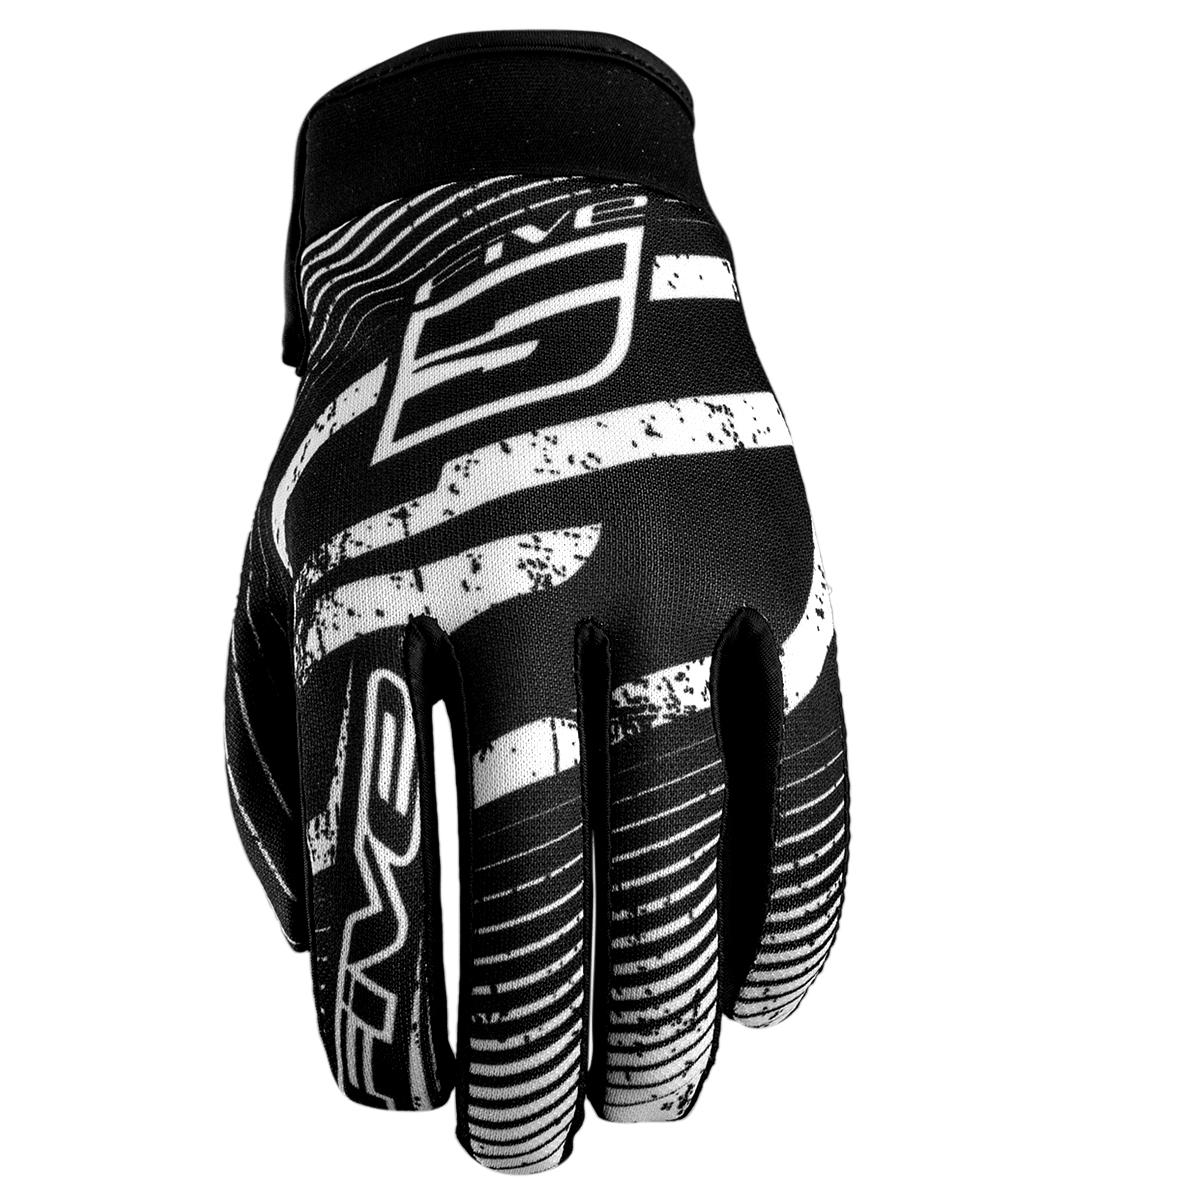 Gants Five Planet Fashion Logo Black/White - XL